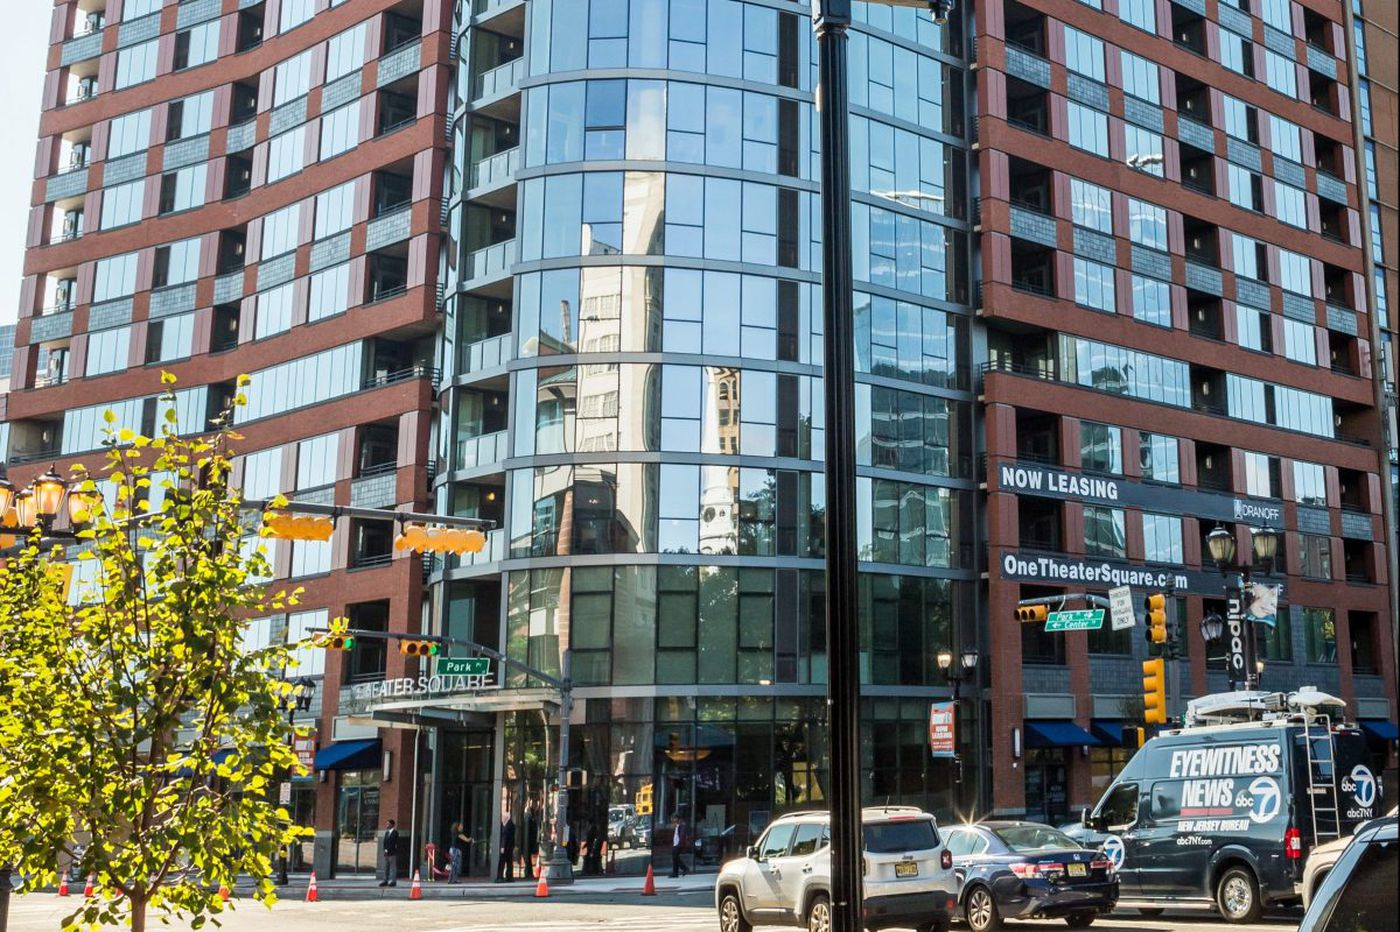 Philly developer Dranoff completes luxury high-rise in Newark, N.J.